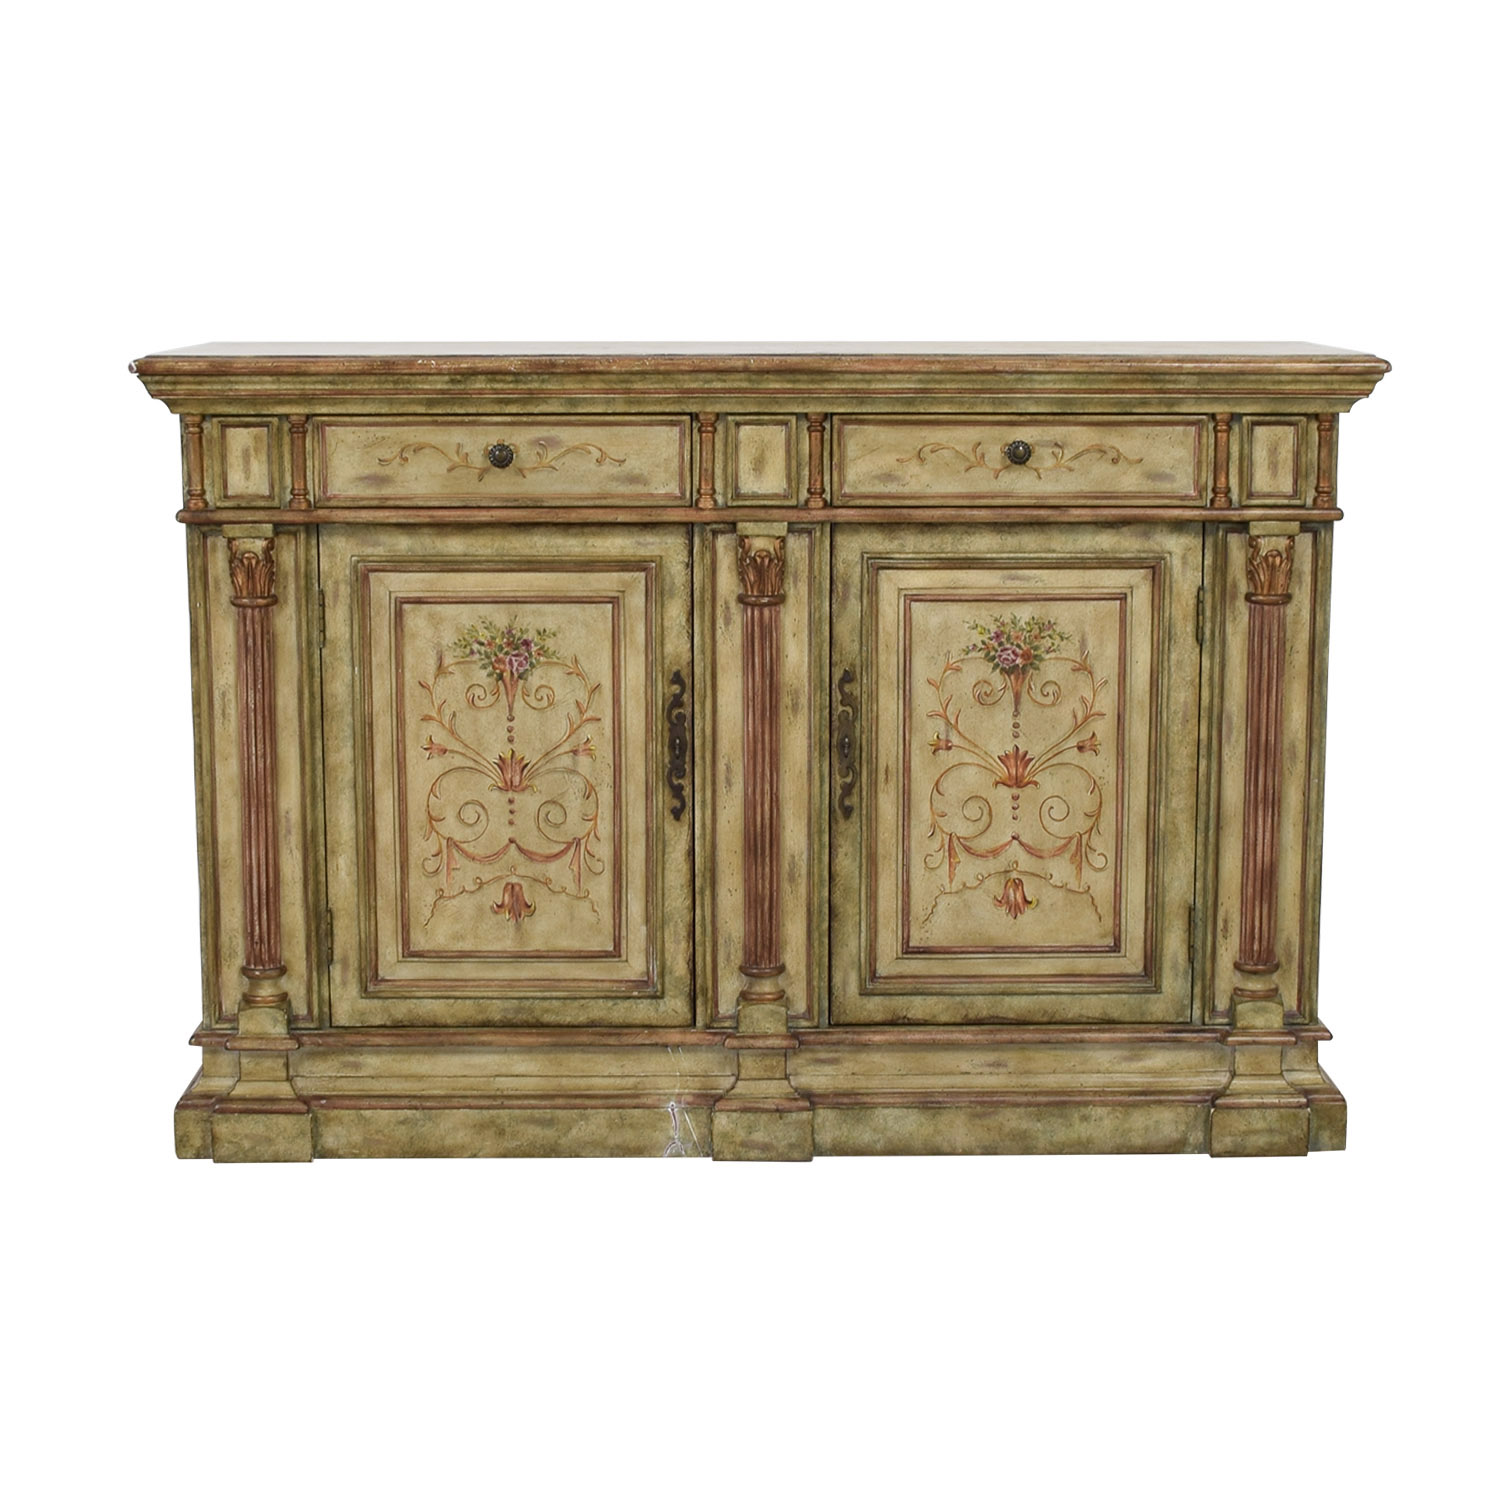 Hooker Furniture Hooker Furniture Seven Seas Creme Scroll Painted Sideboard second hand